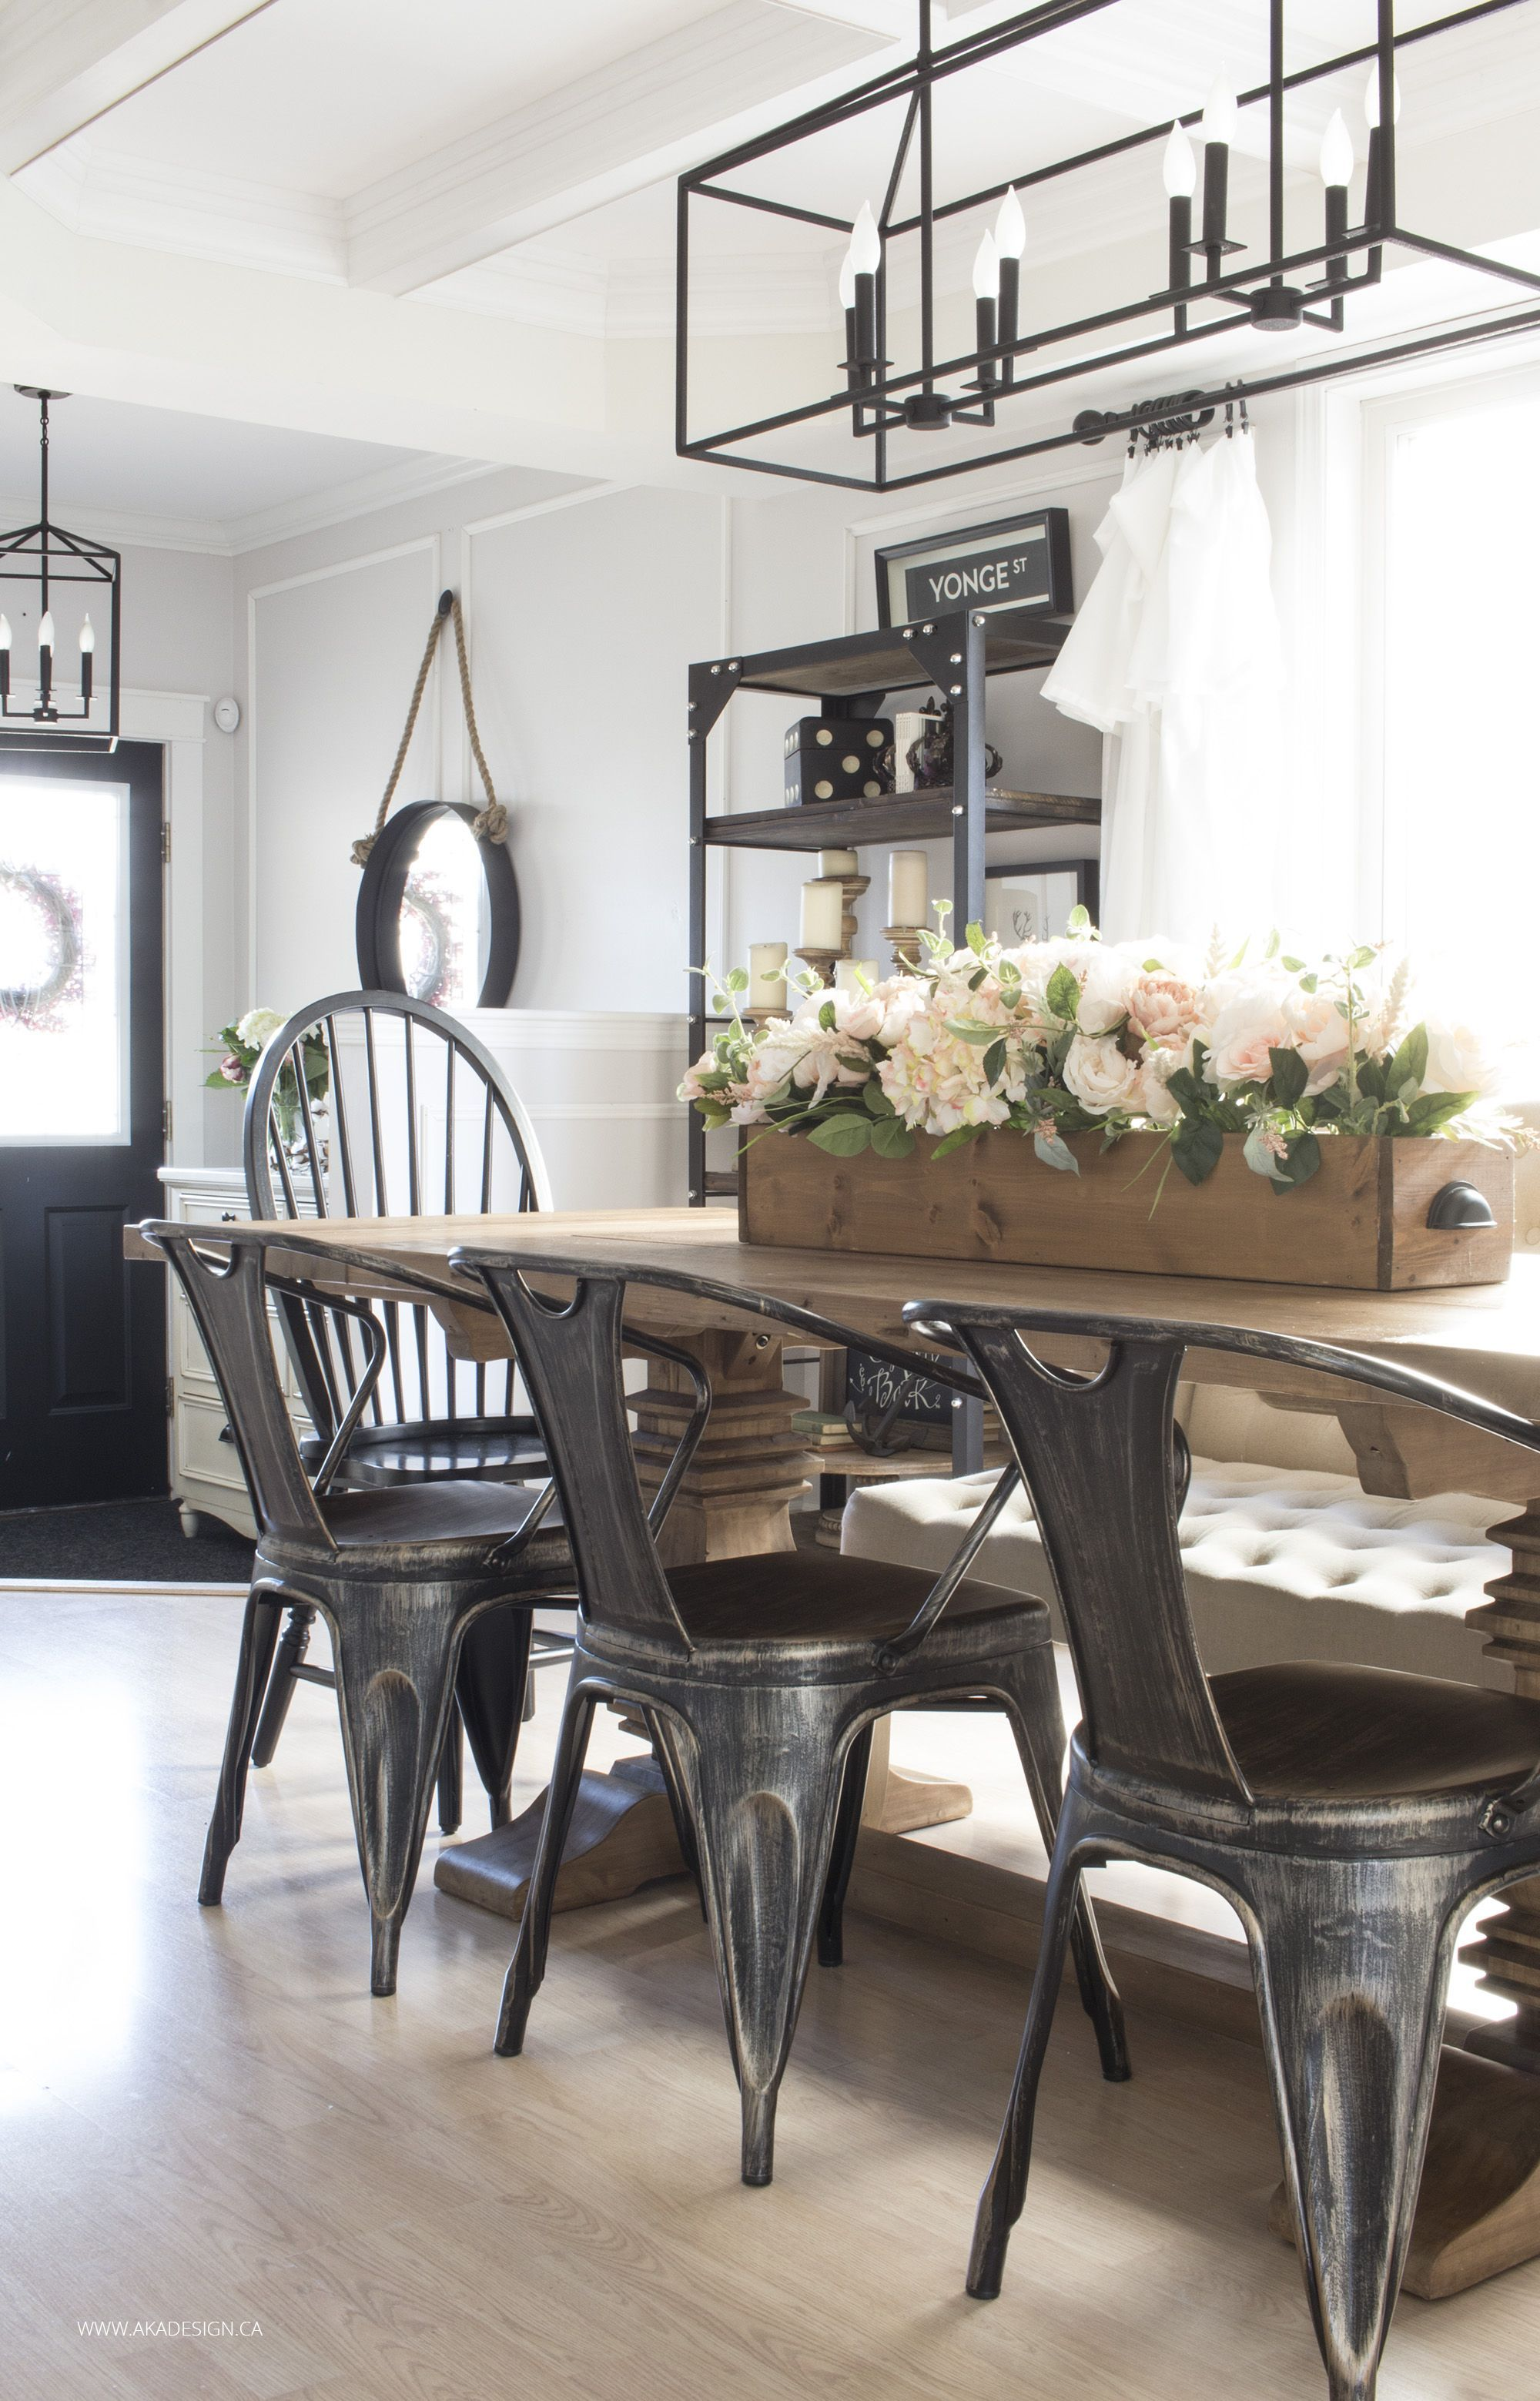 Part 2 Of Our Cozy Spring Home Tour Takes Us Through Our Fixer Uppe Farmhouse Dining Rooms Decor Modern Farmhouse Dining Room Decor Farmhouse Style Dining Room